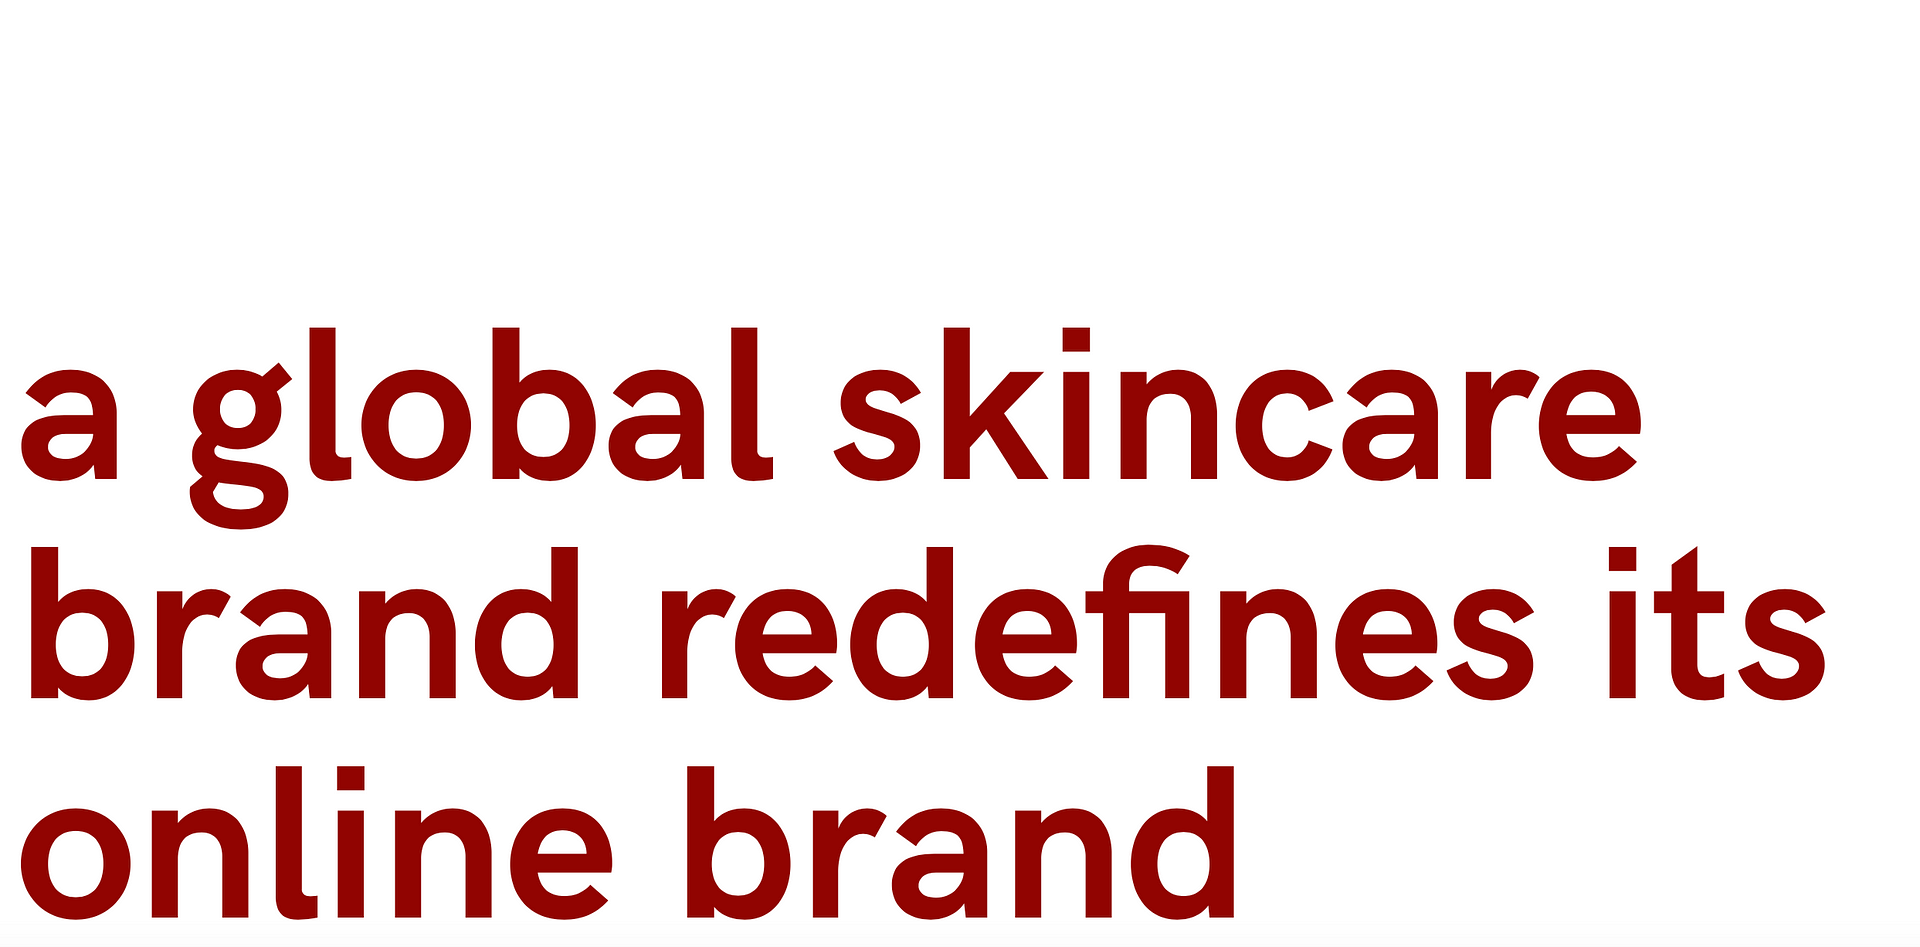 a global skincare brand redefines its online brand